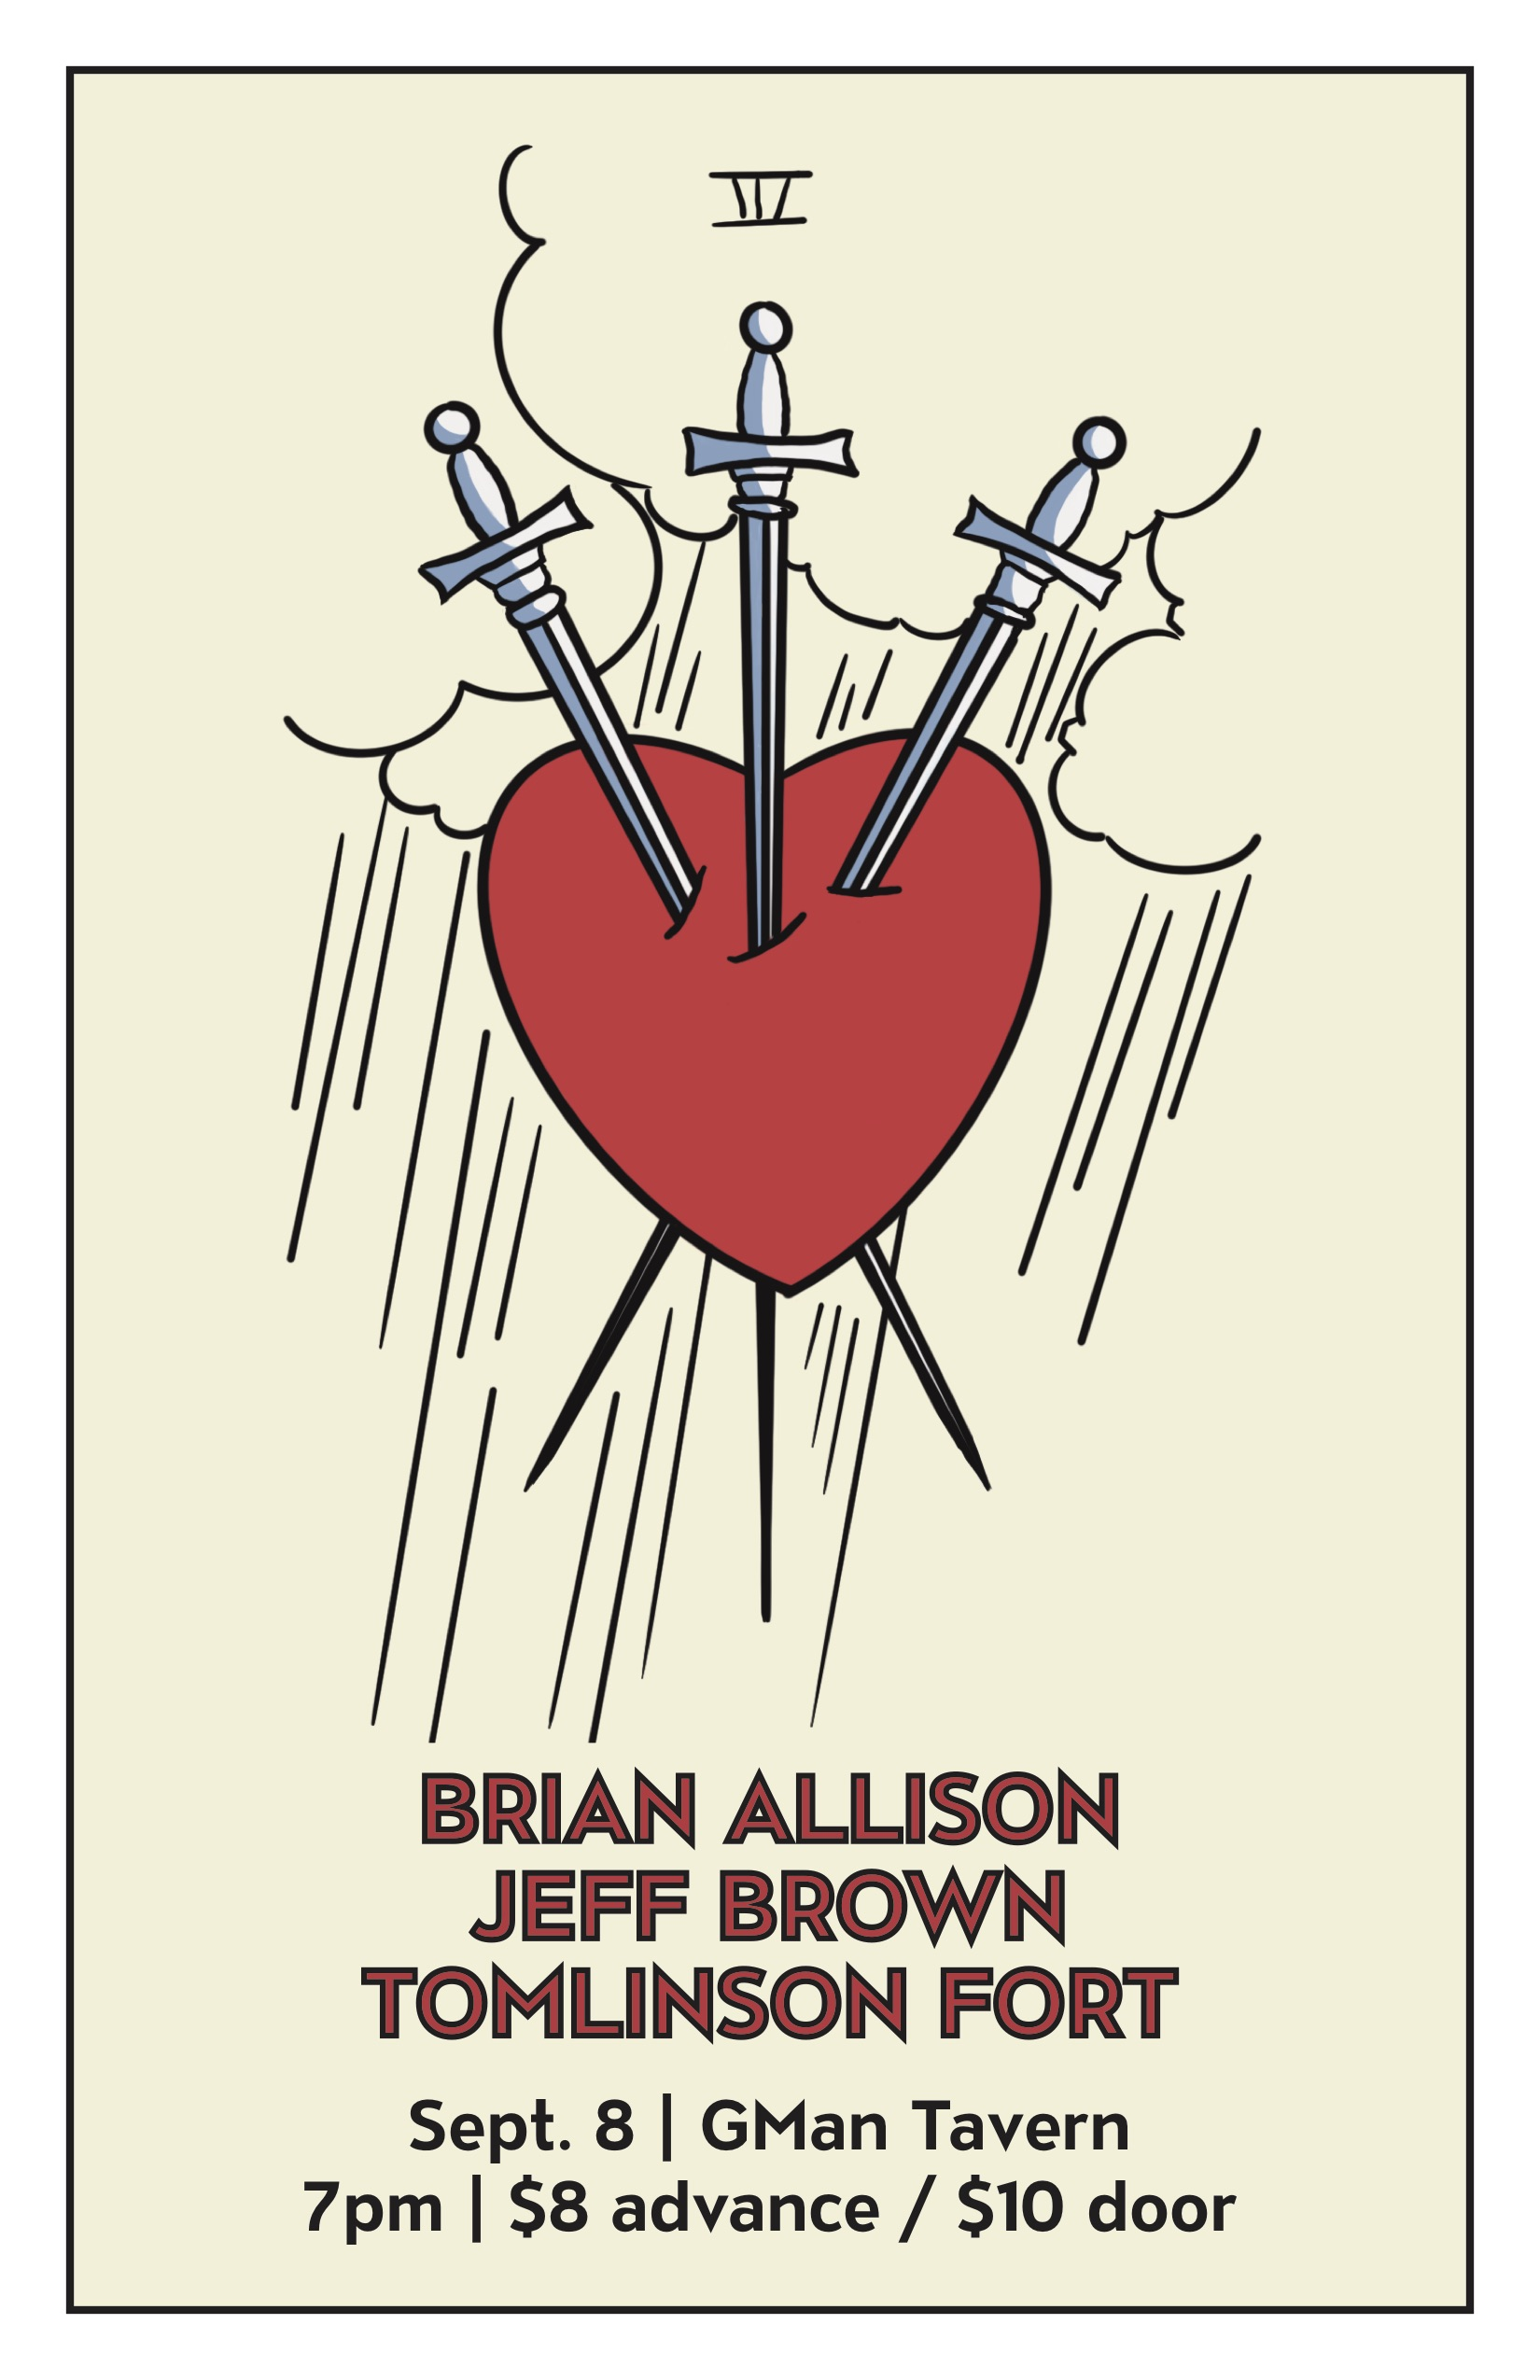 A poster for rock show depicting the 'Three of Swords' tarot card design. Brian Allison, Jeff Brown, and Tomlinson Fort at GMan Tavern